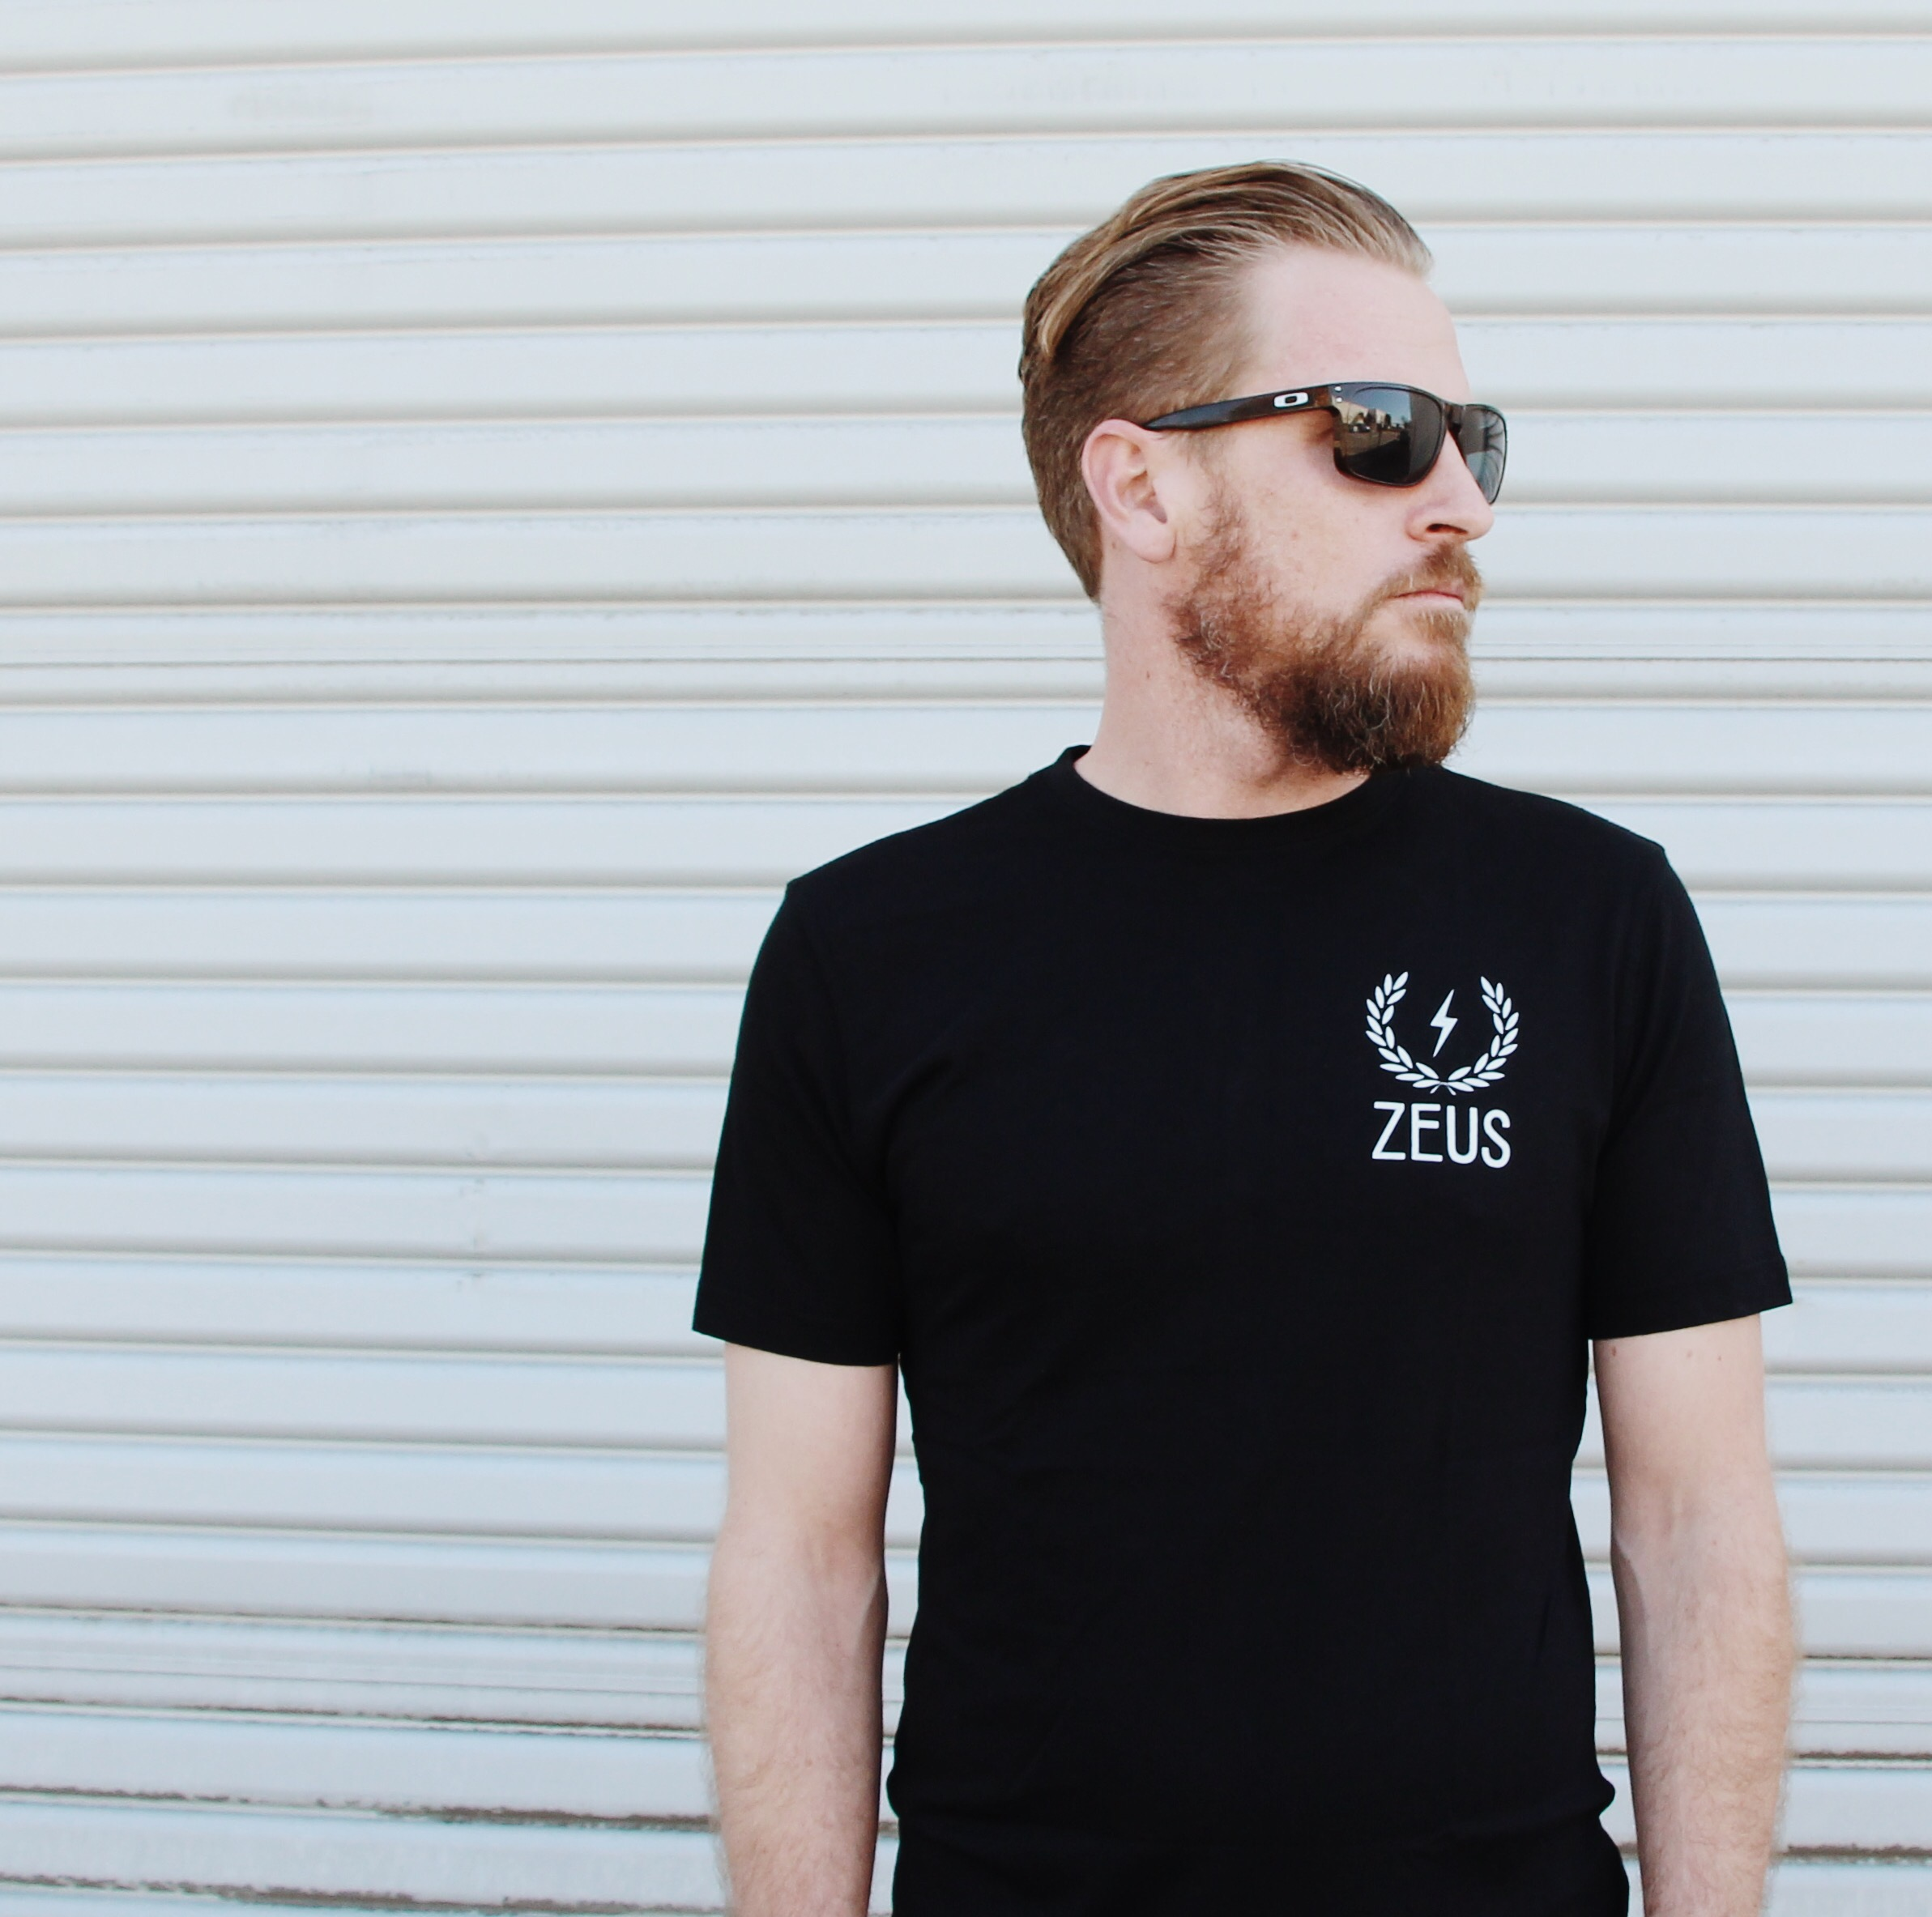 THE STORY BEHIND OUR NEW ZEUS GRAPHIC TEES